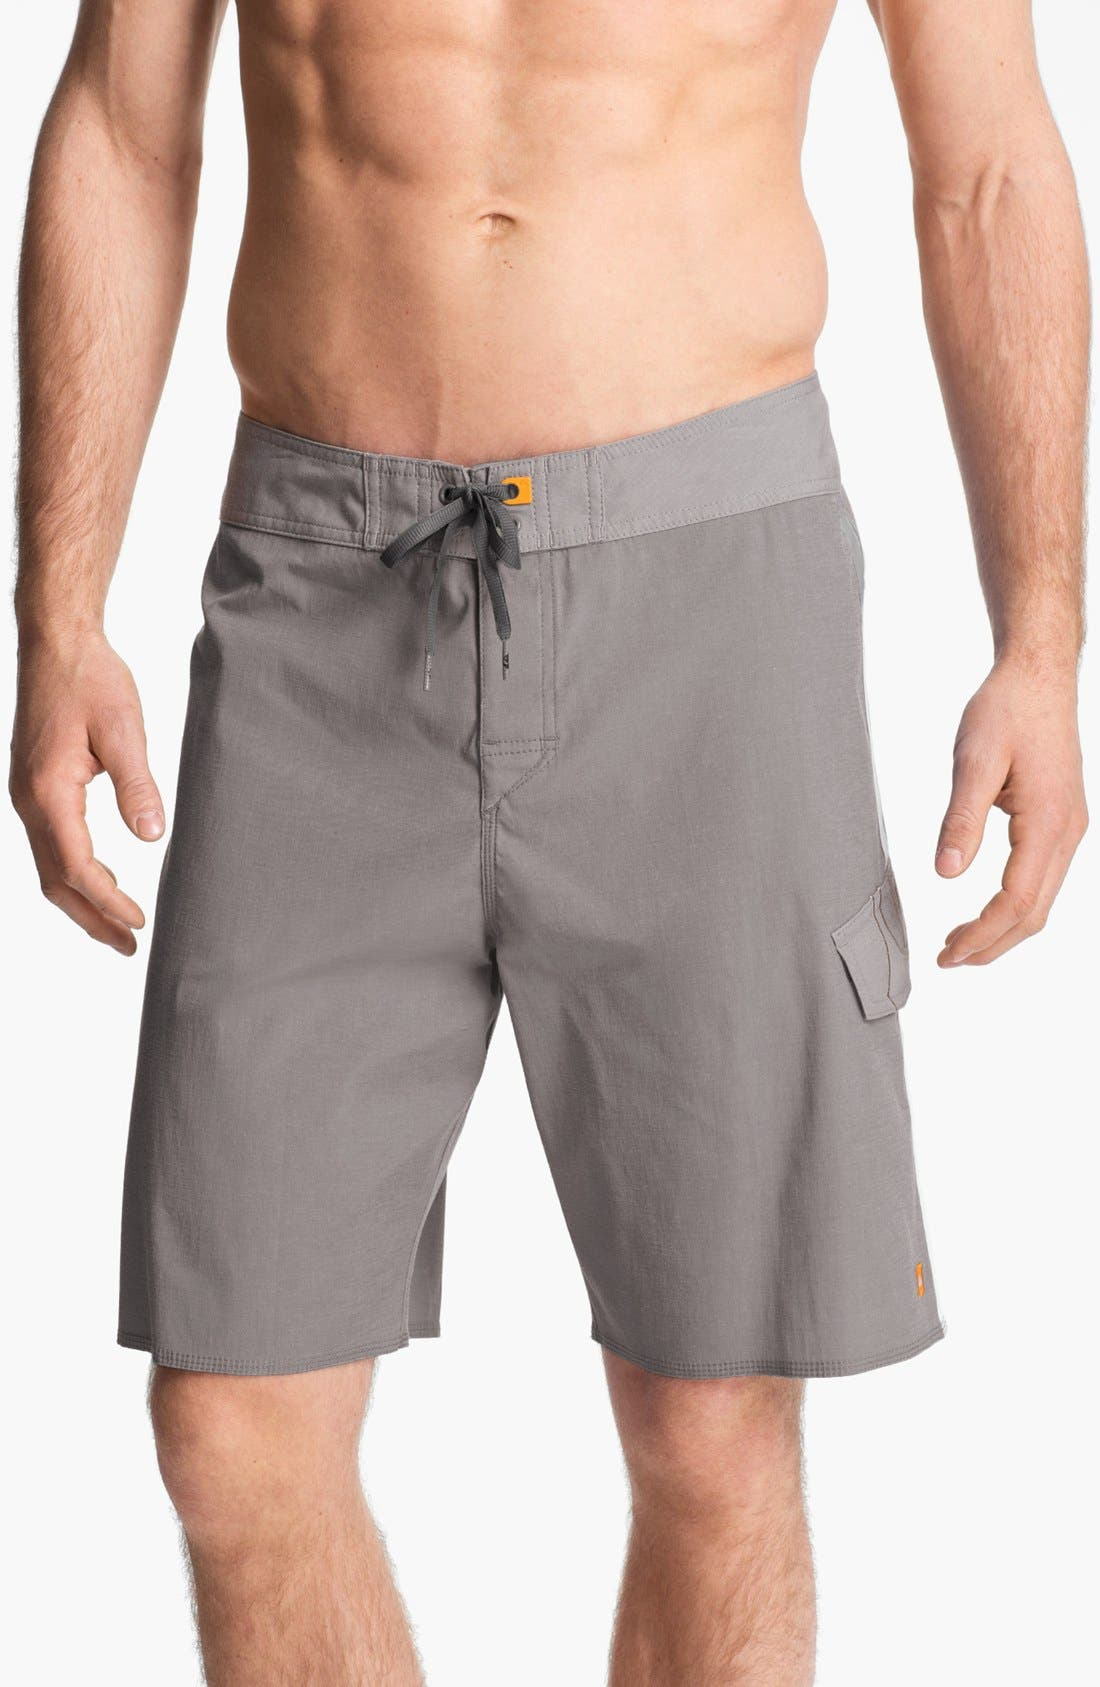 Alternate Image 1 Selected - Quiksilver Waterman Collection 'Last Call' Board Shorts